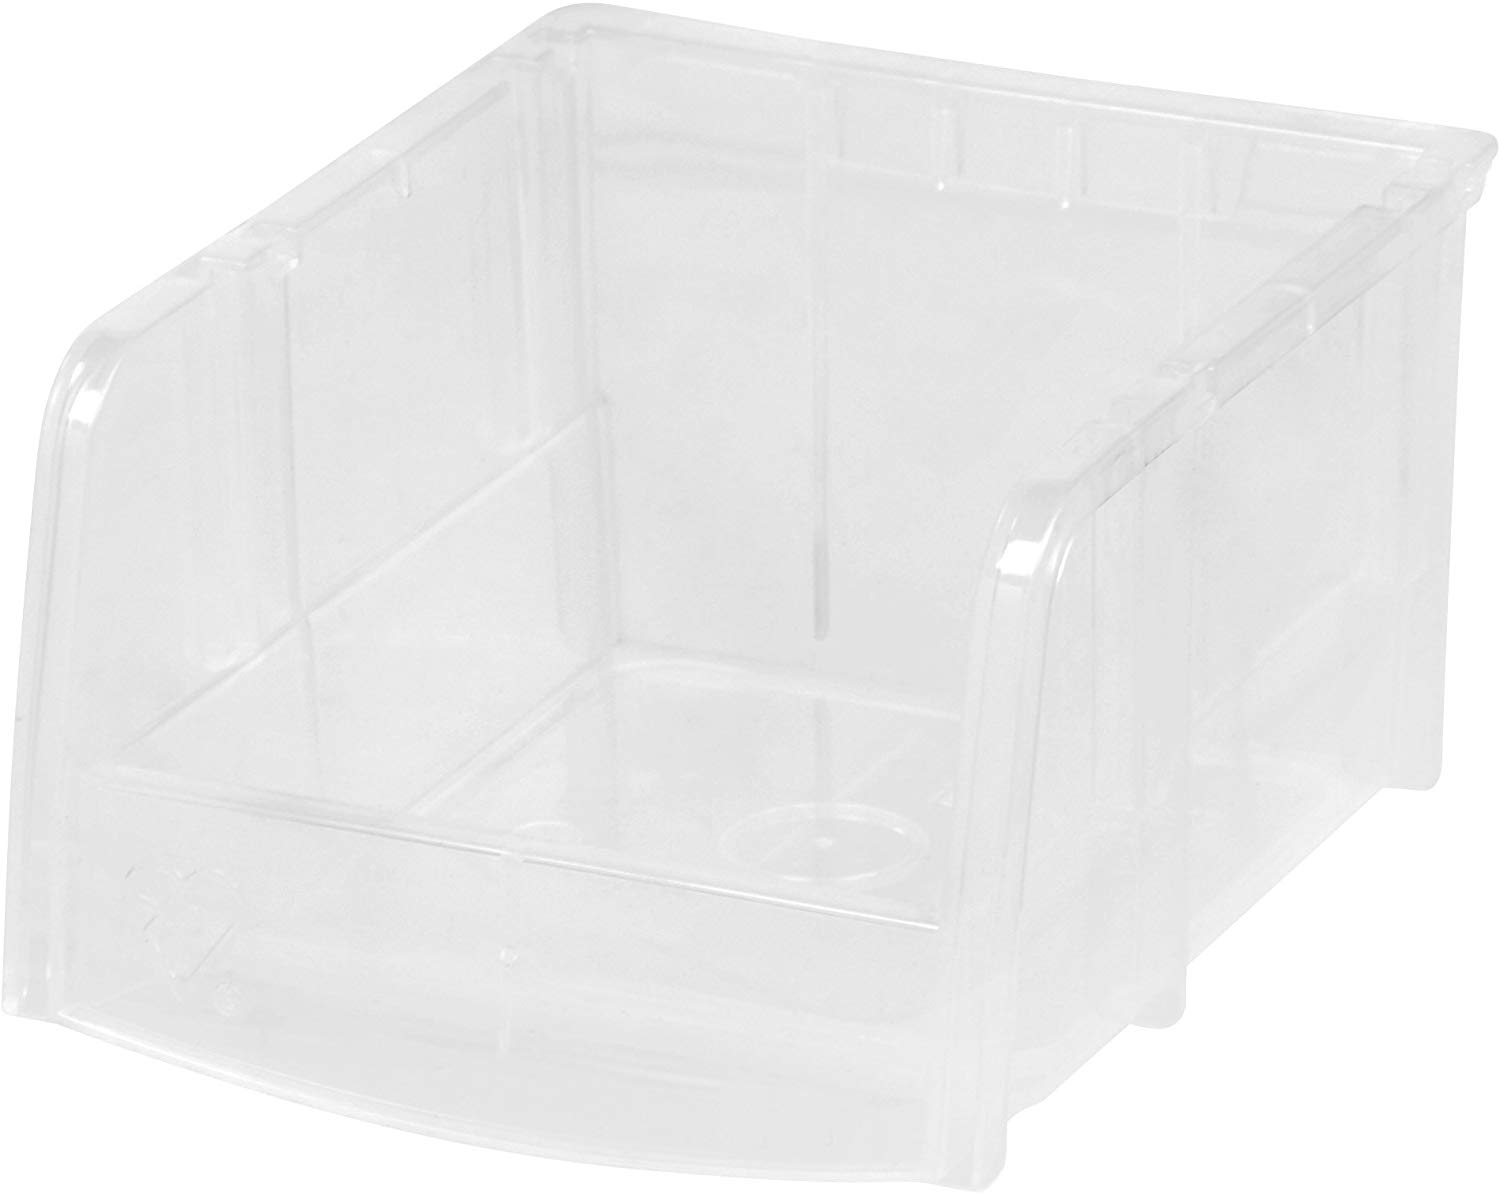 5.5 x 4.5 x 3 inches IP Clear Stacking Bin